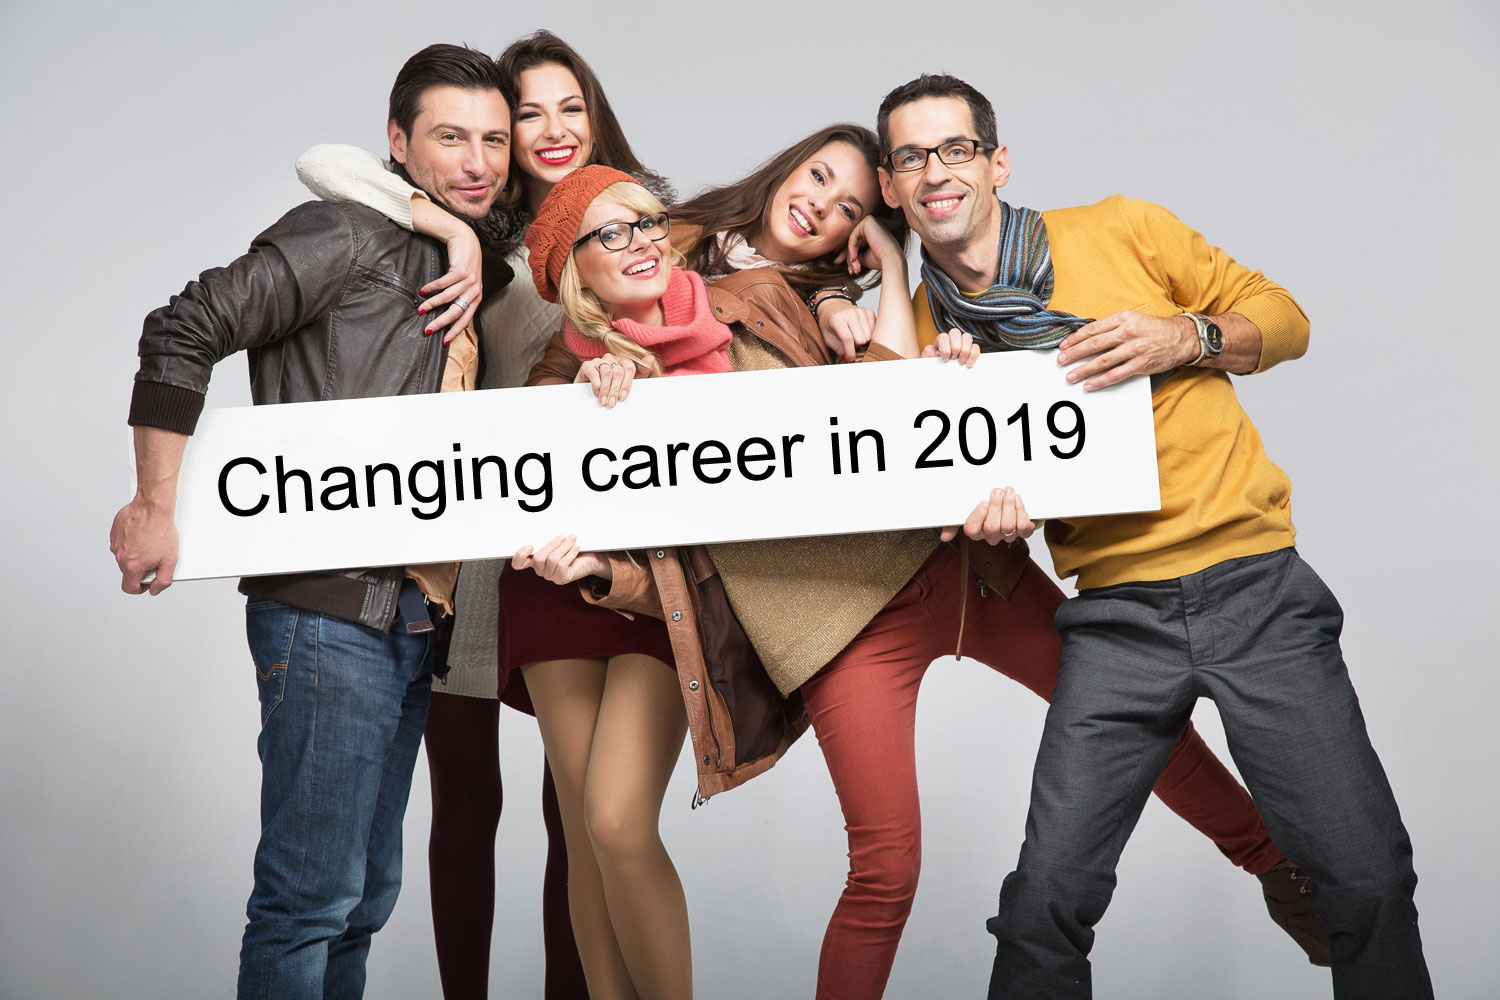 Thinking of Changing Career in 2019? Here's What You Need To Do...